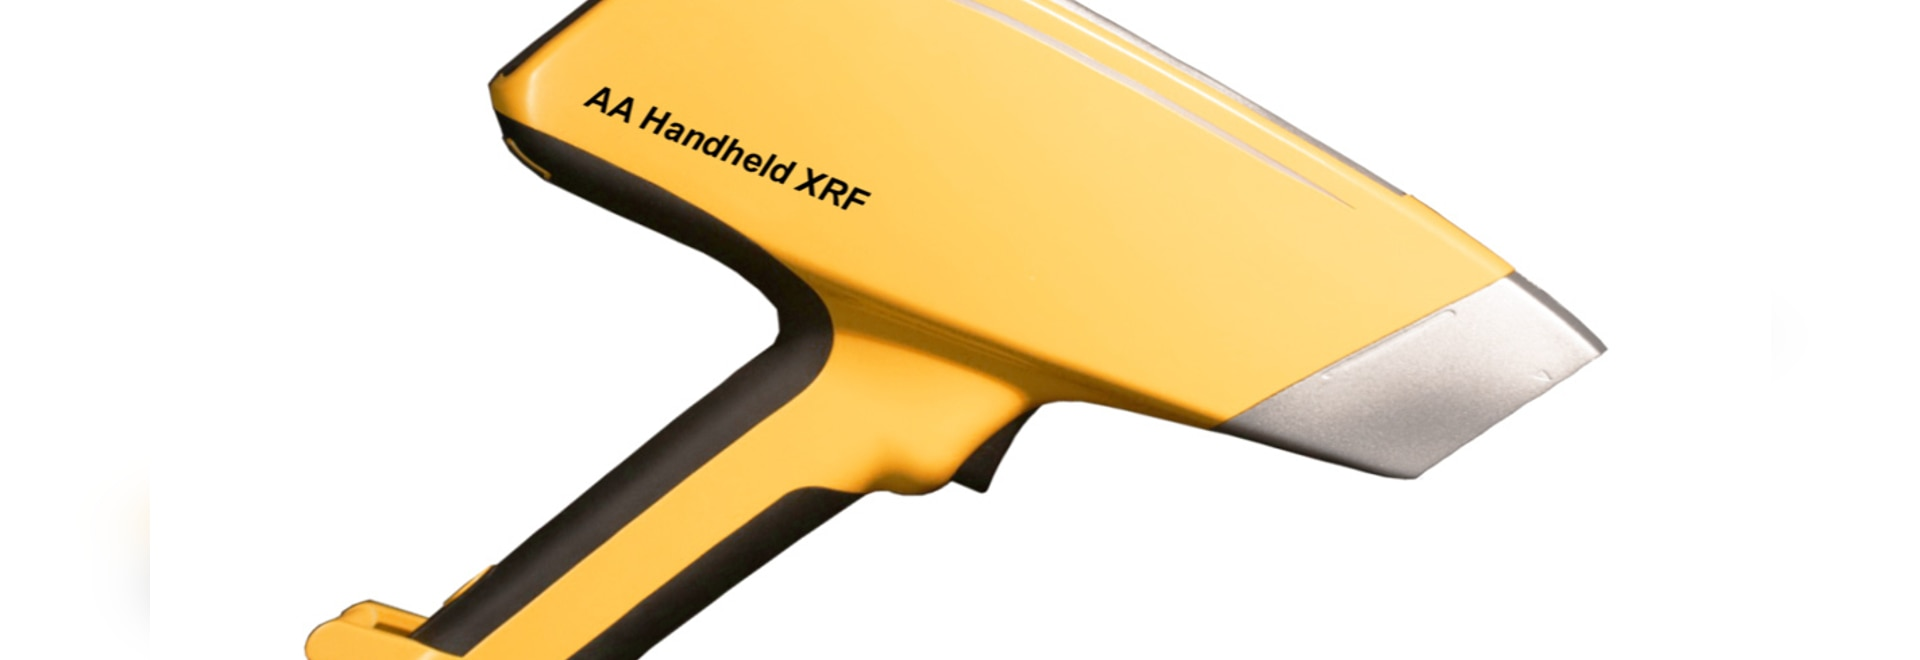 Angstrom released a new function on Handheld XRF